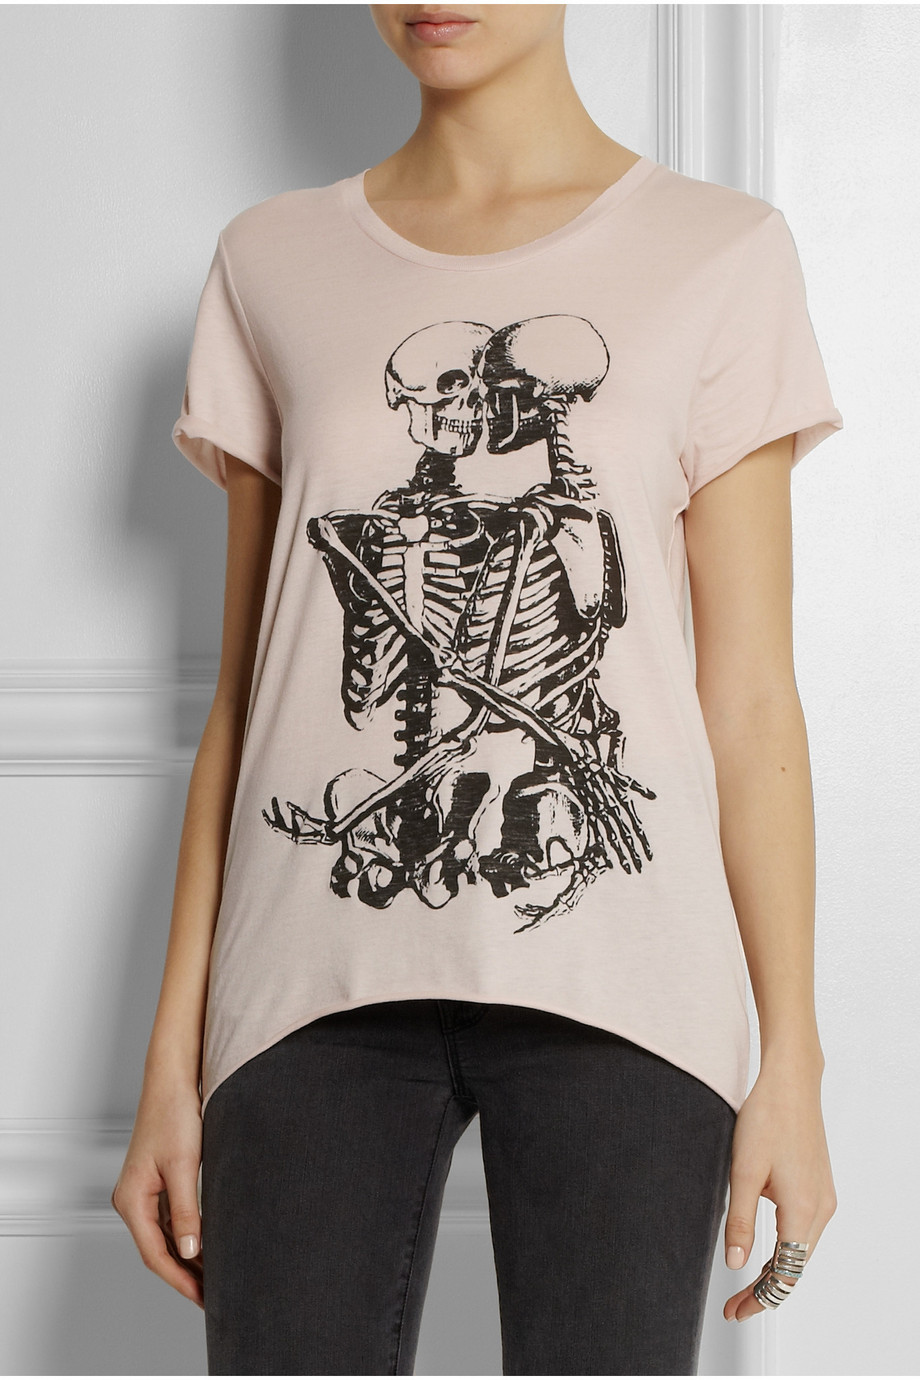 Zoe Karssen Skull Lovers Cotton-Blend Jersey T-Shirt | Fancy Friday - The Cost of Comfort - Cute Loungewear